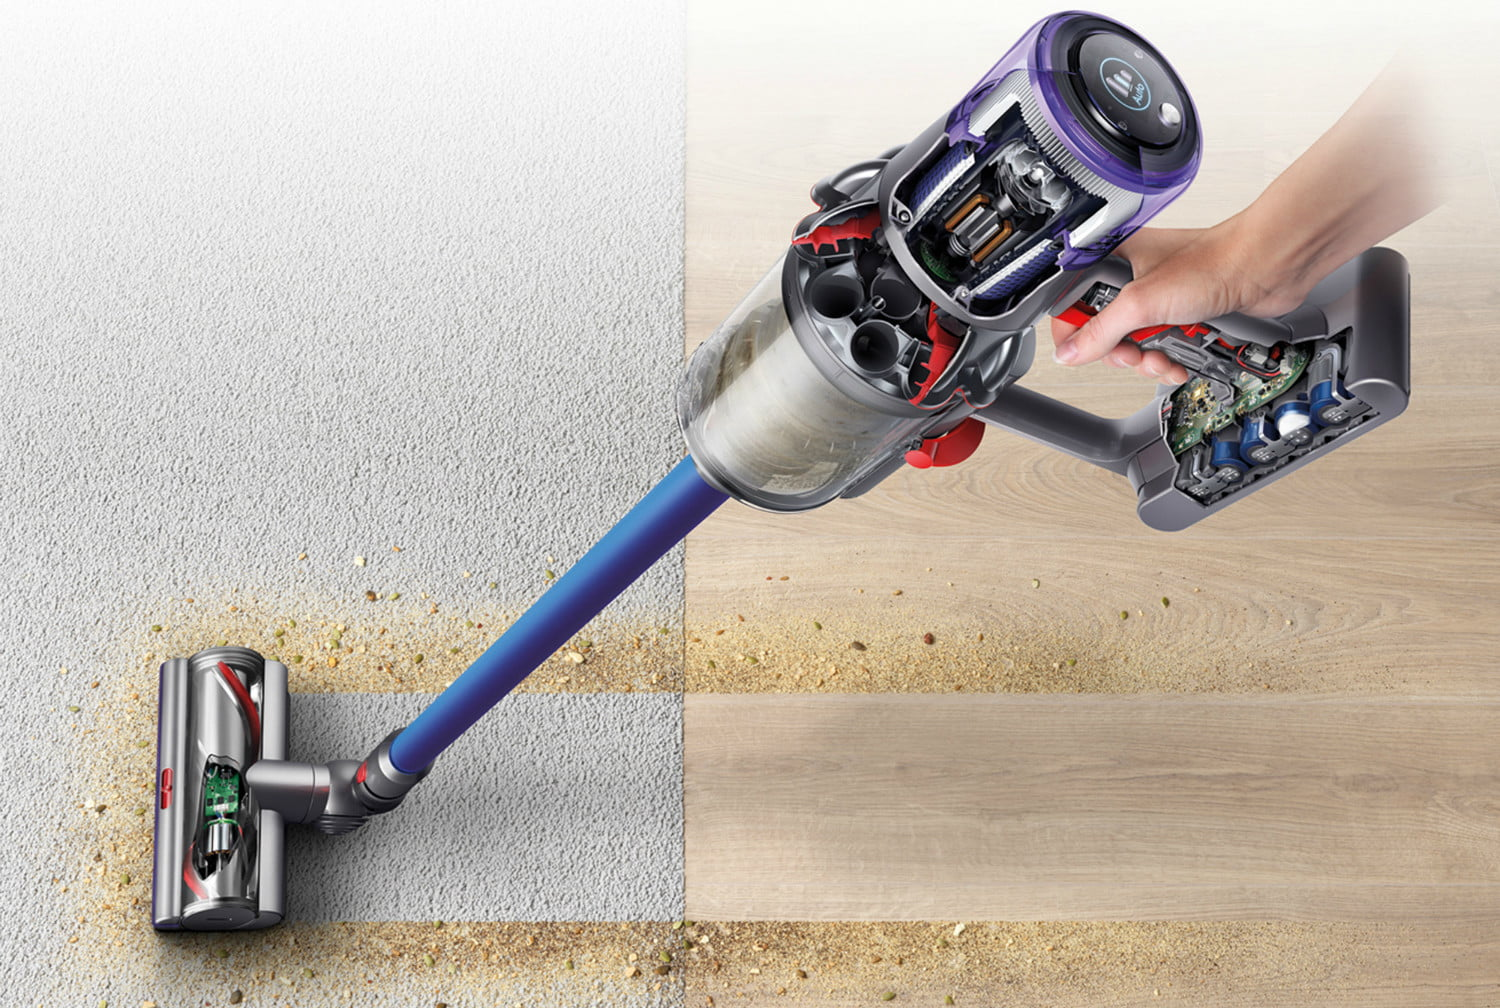 Amazon slashes prices on most Dyson cordless stick vacuums